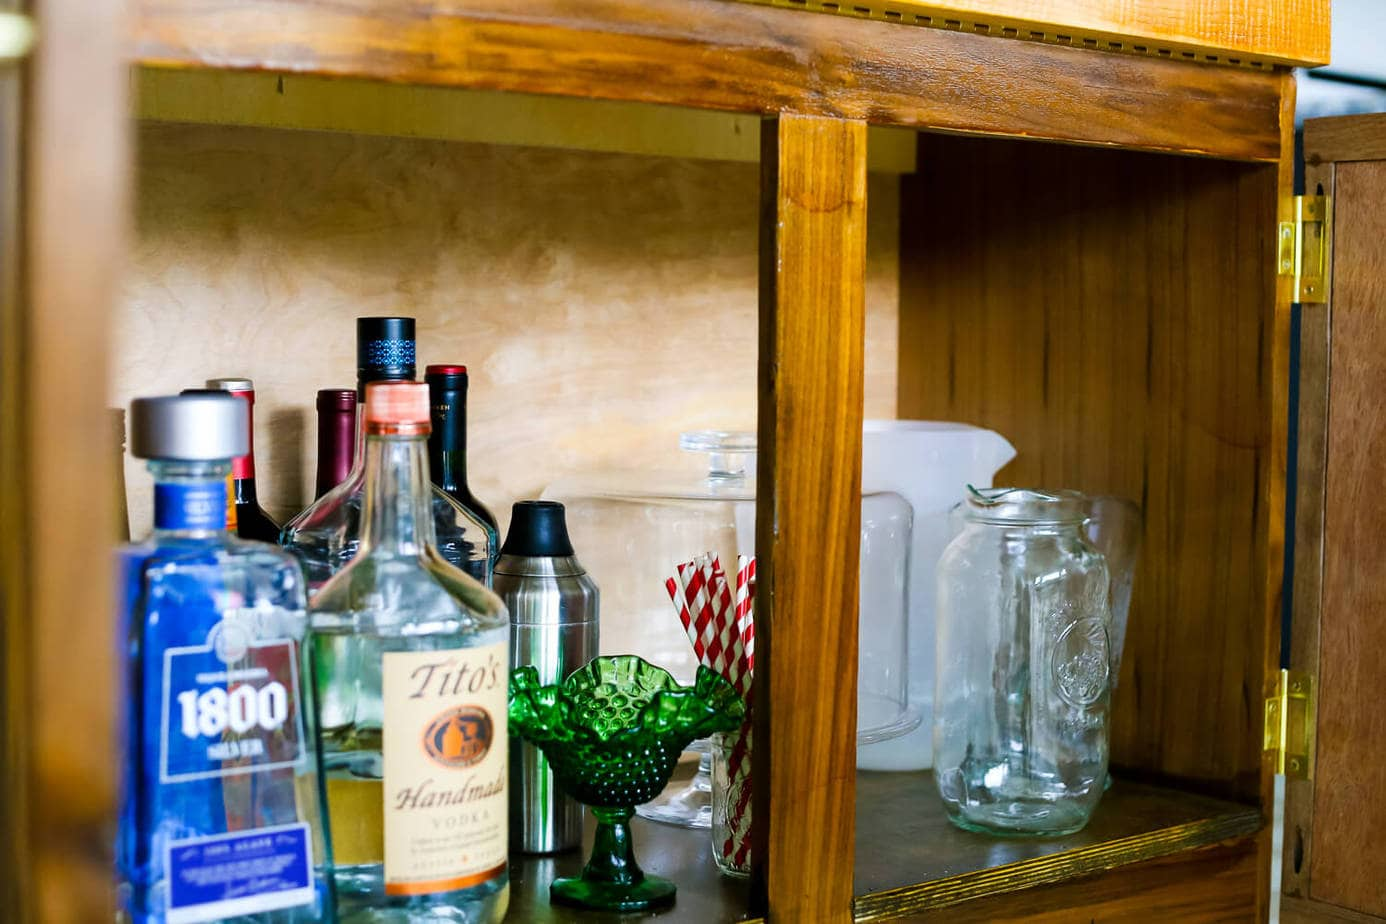 This DIY bar cart is gorgeous! How to use a paint sprayer to finish furniture, how to style a gorgeous bar cart. Great tips and ideas!